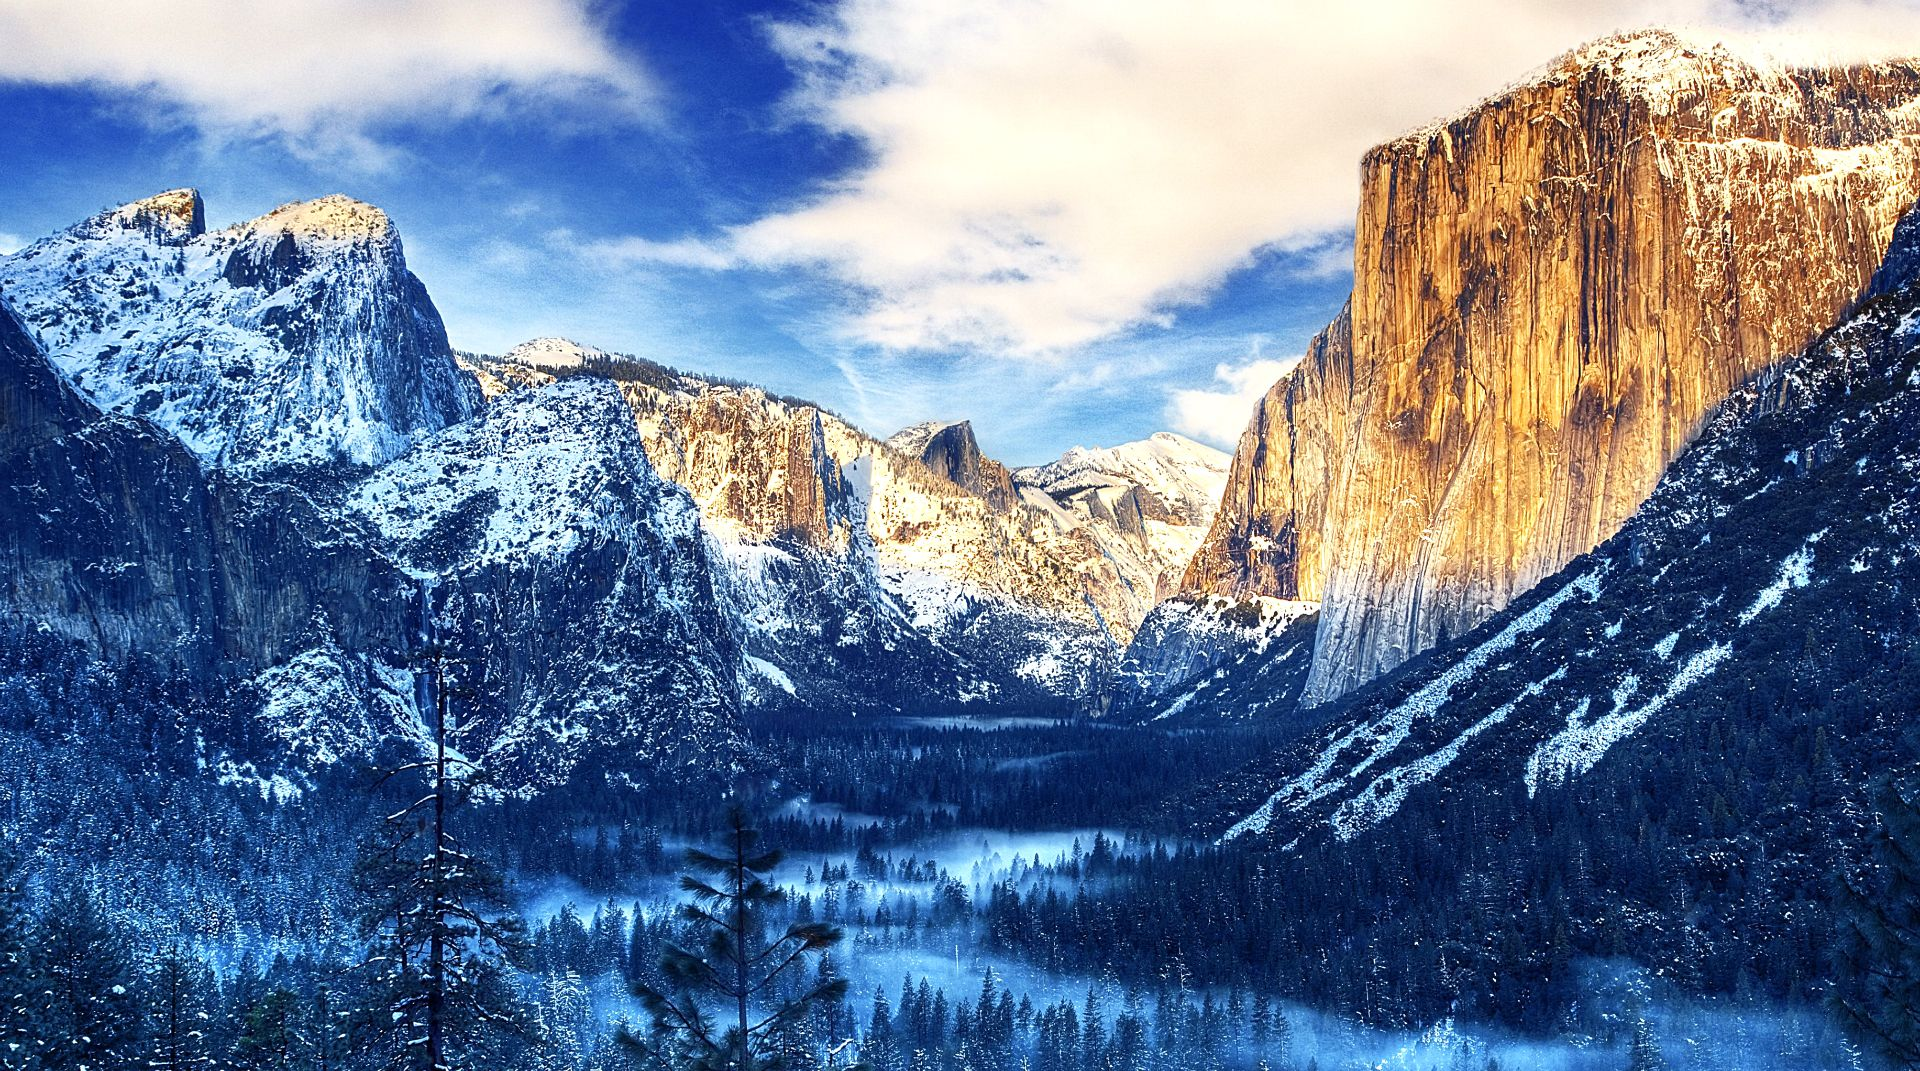 4k Amazing Wallpapers Windows 10 Hd Wallpaper 4 Us Yosemite Yosemite Valley National Parks